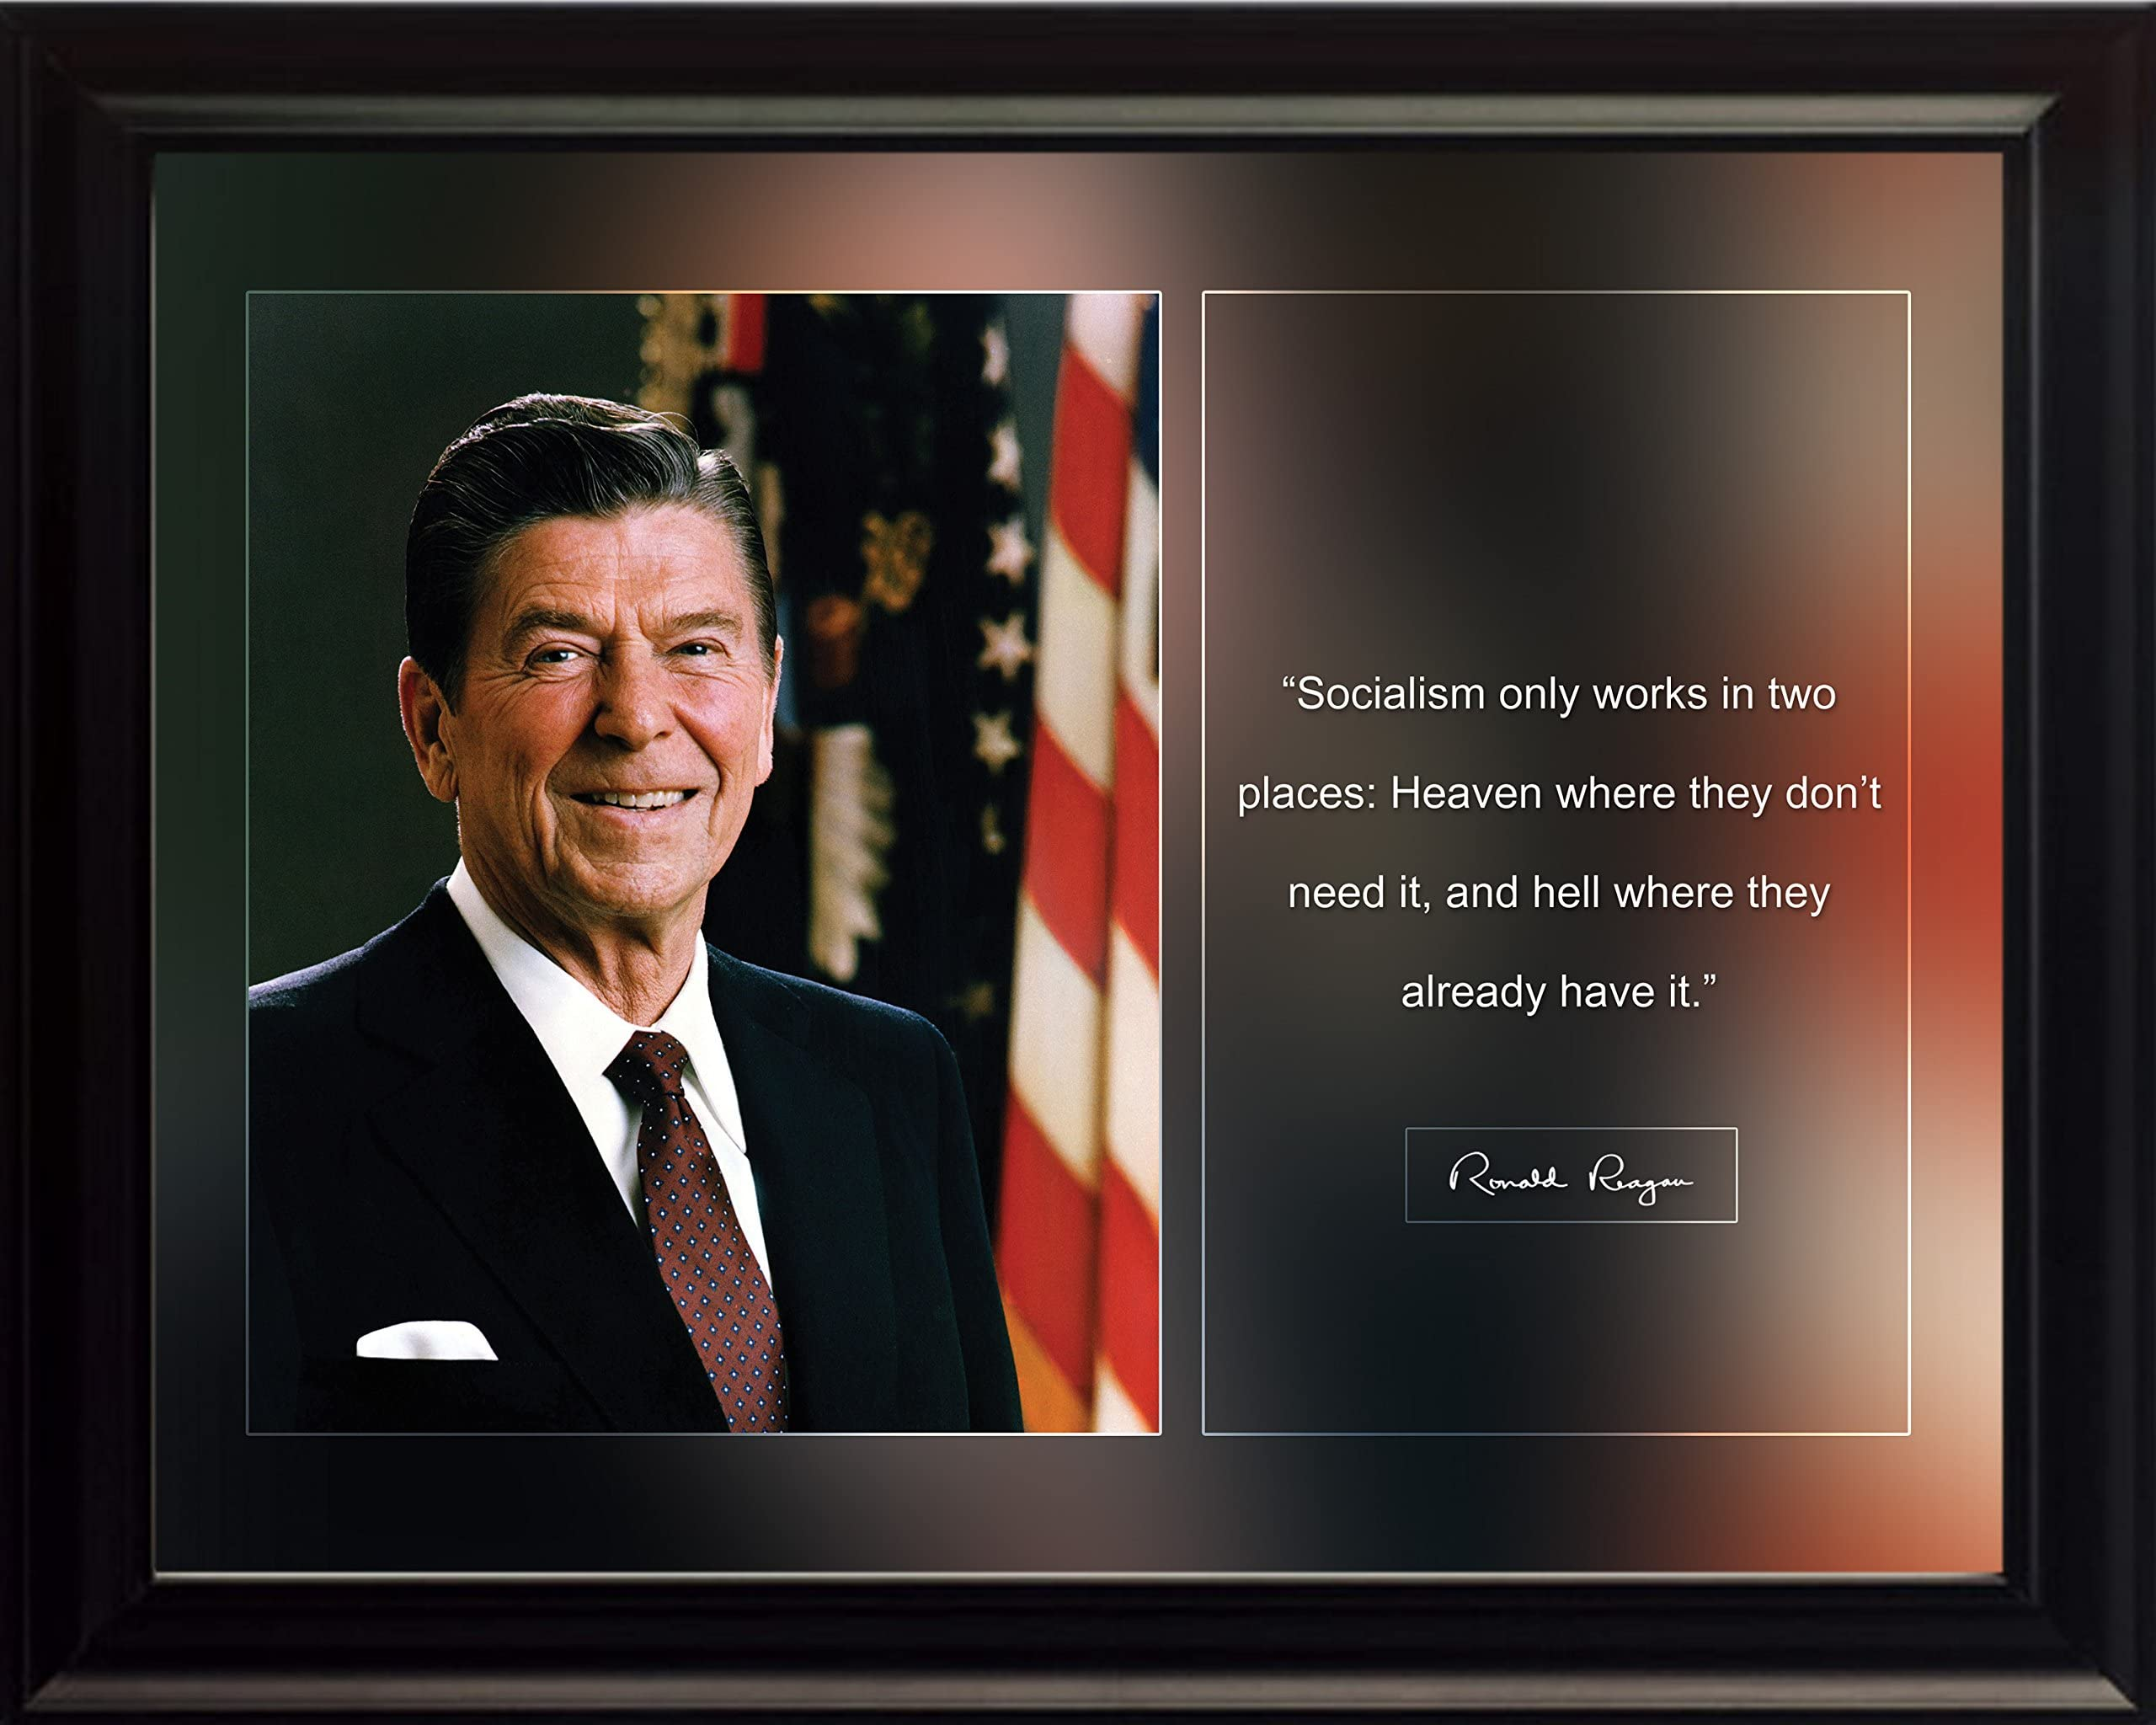 RONALD REAGAN 8X10 GLOSSY PHOTO PICTURE IMAGE #6